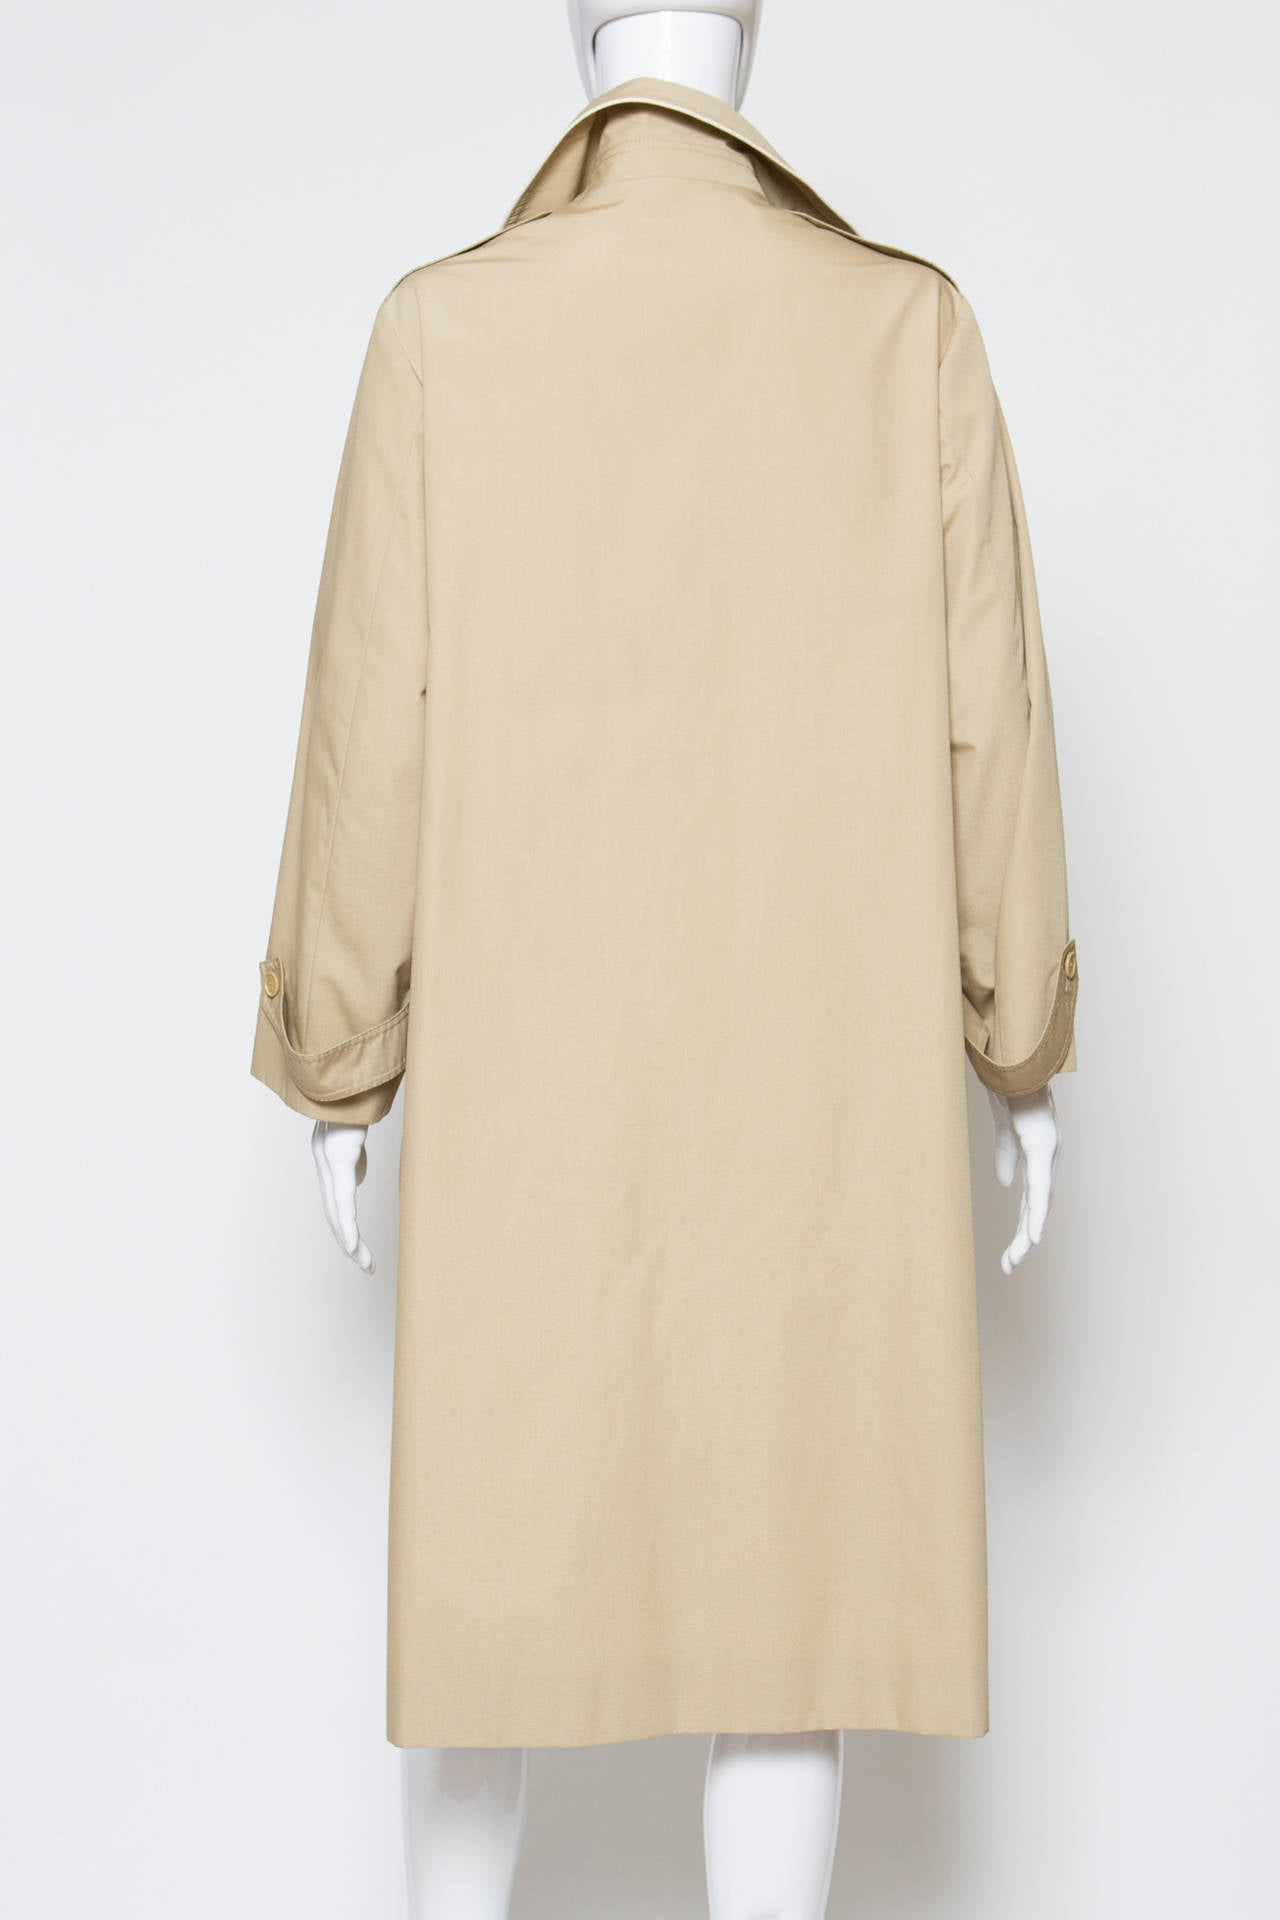 1975s Celine Camel Trench-Coat 5